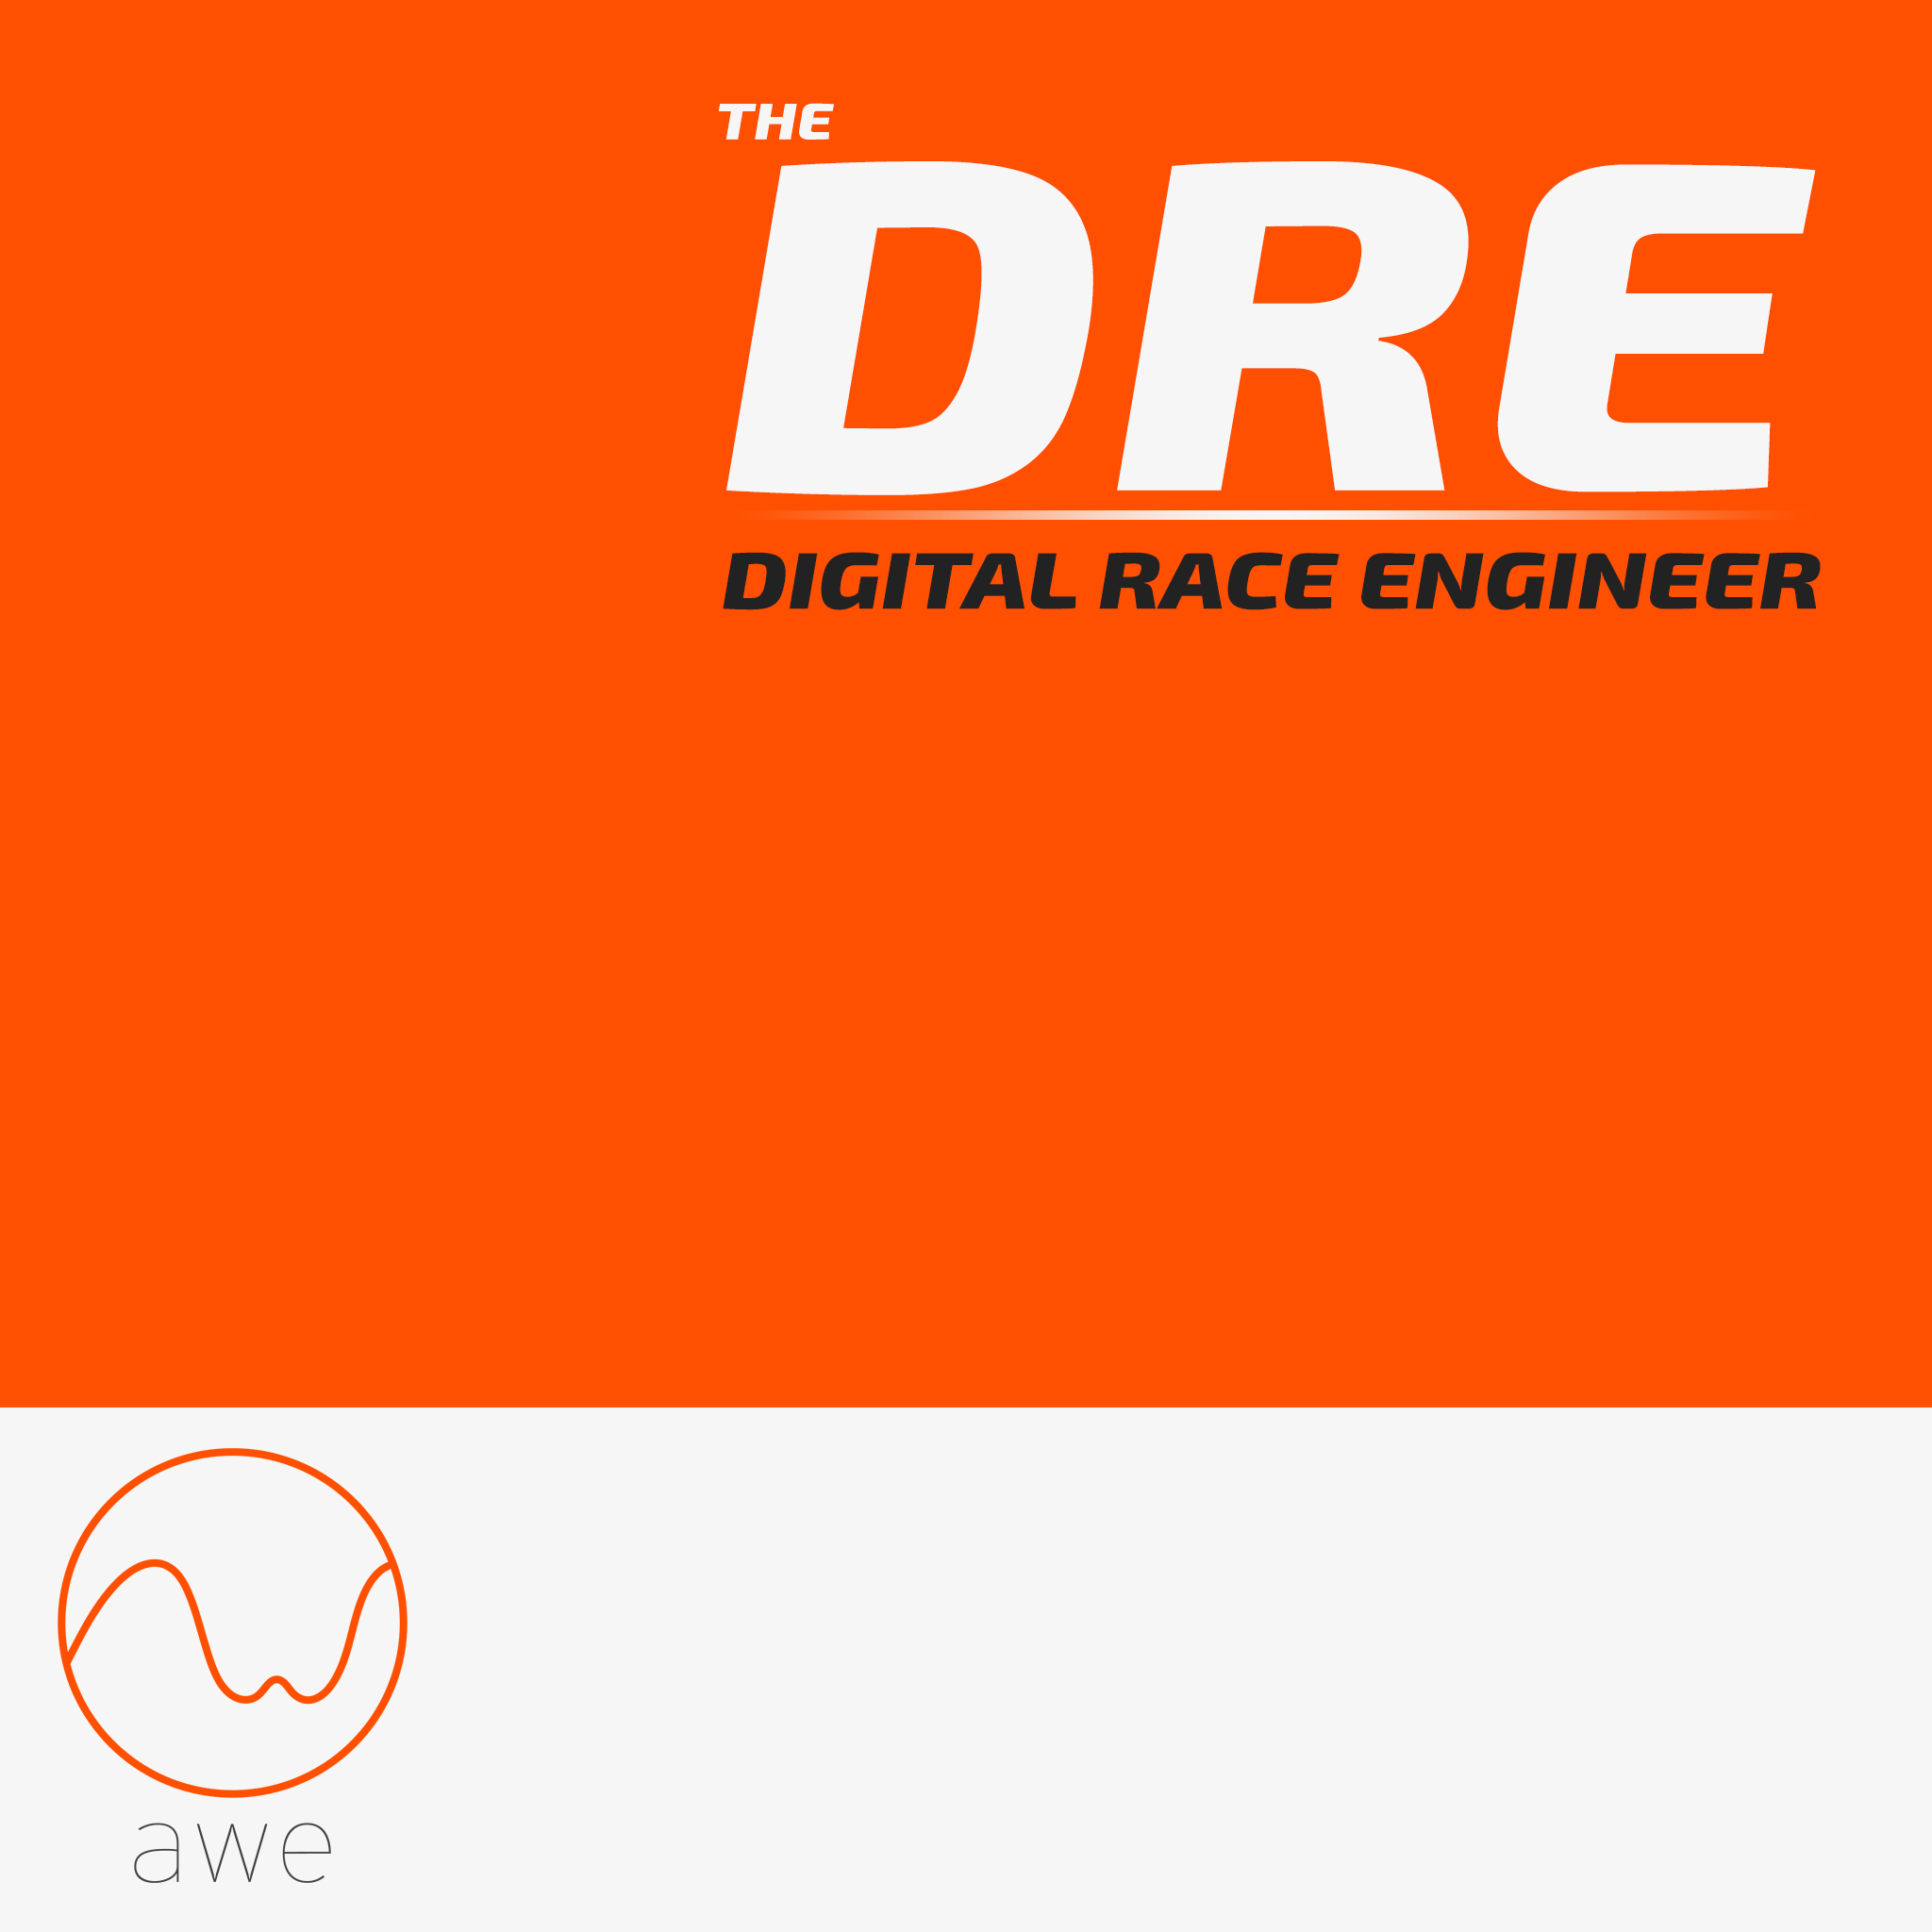 The Digital Race Engineer